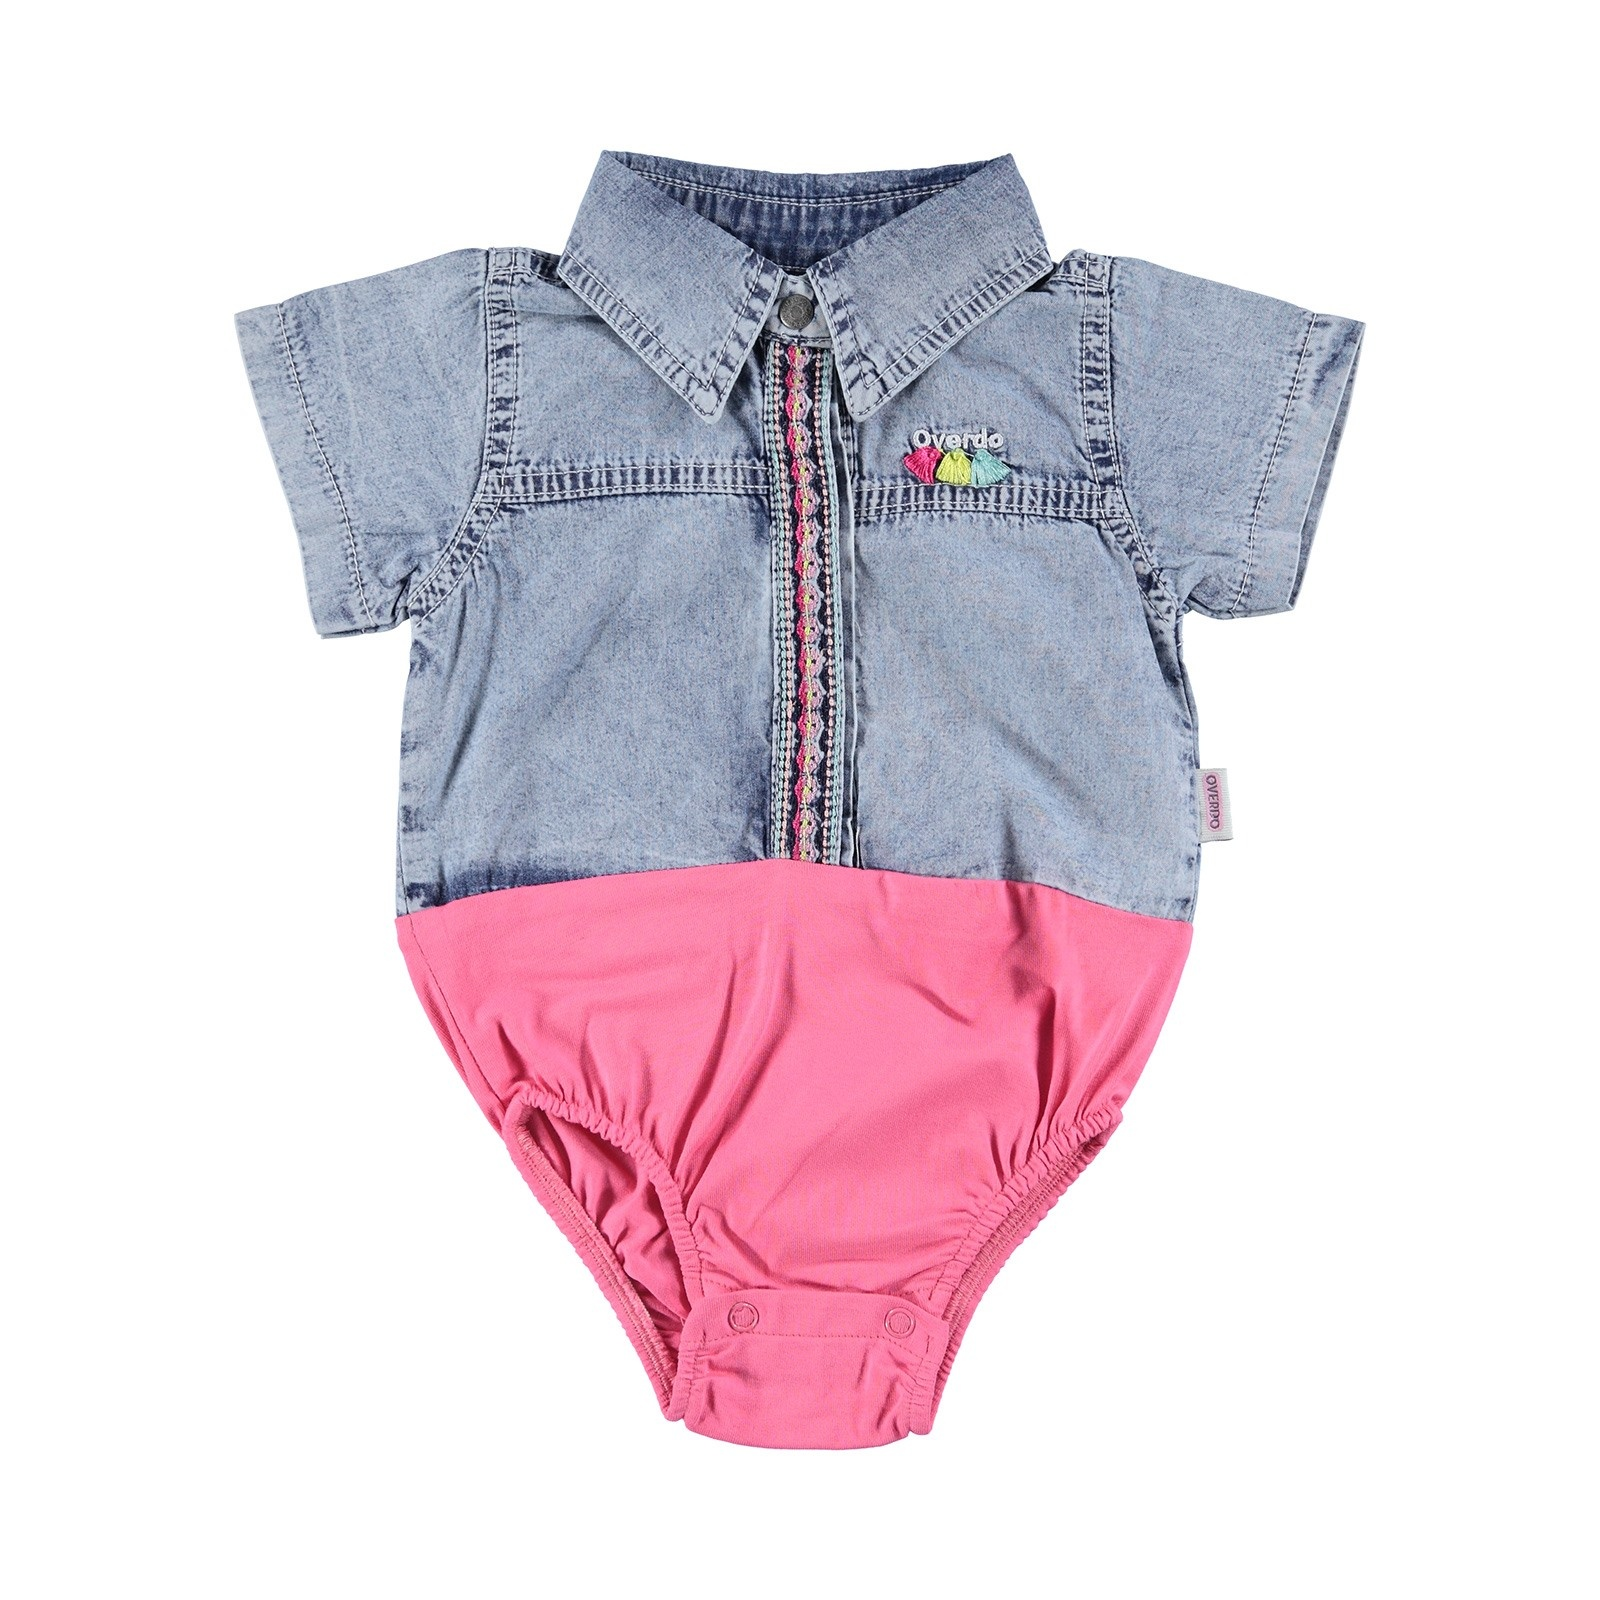 Ebebek Overdo Baby Girl Short Sleeve Embroidered Shirt Bodysuit